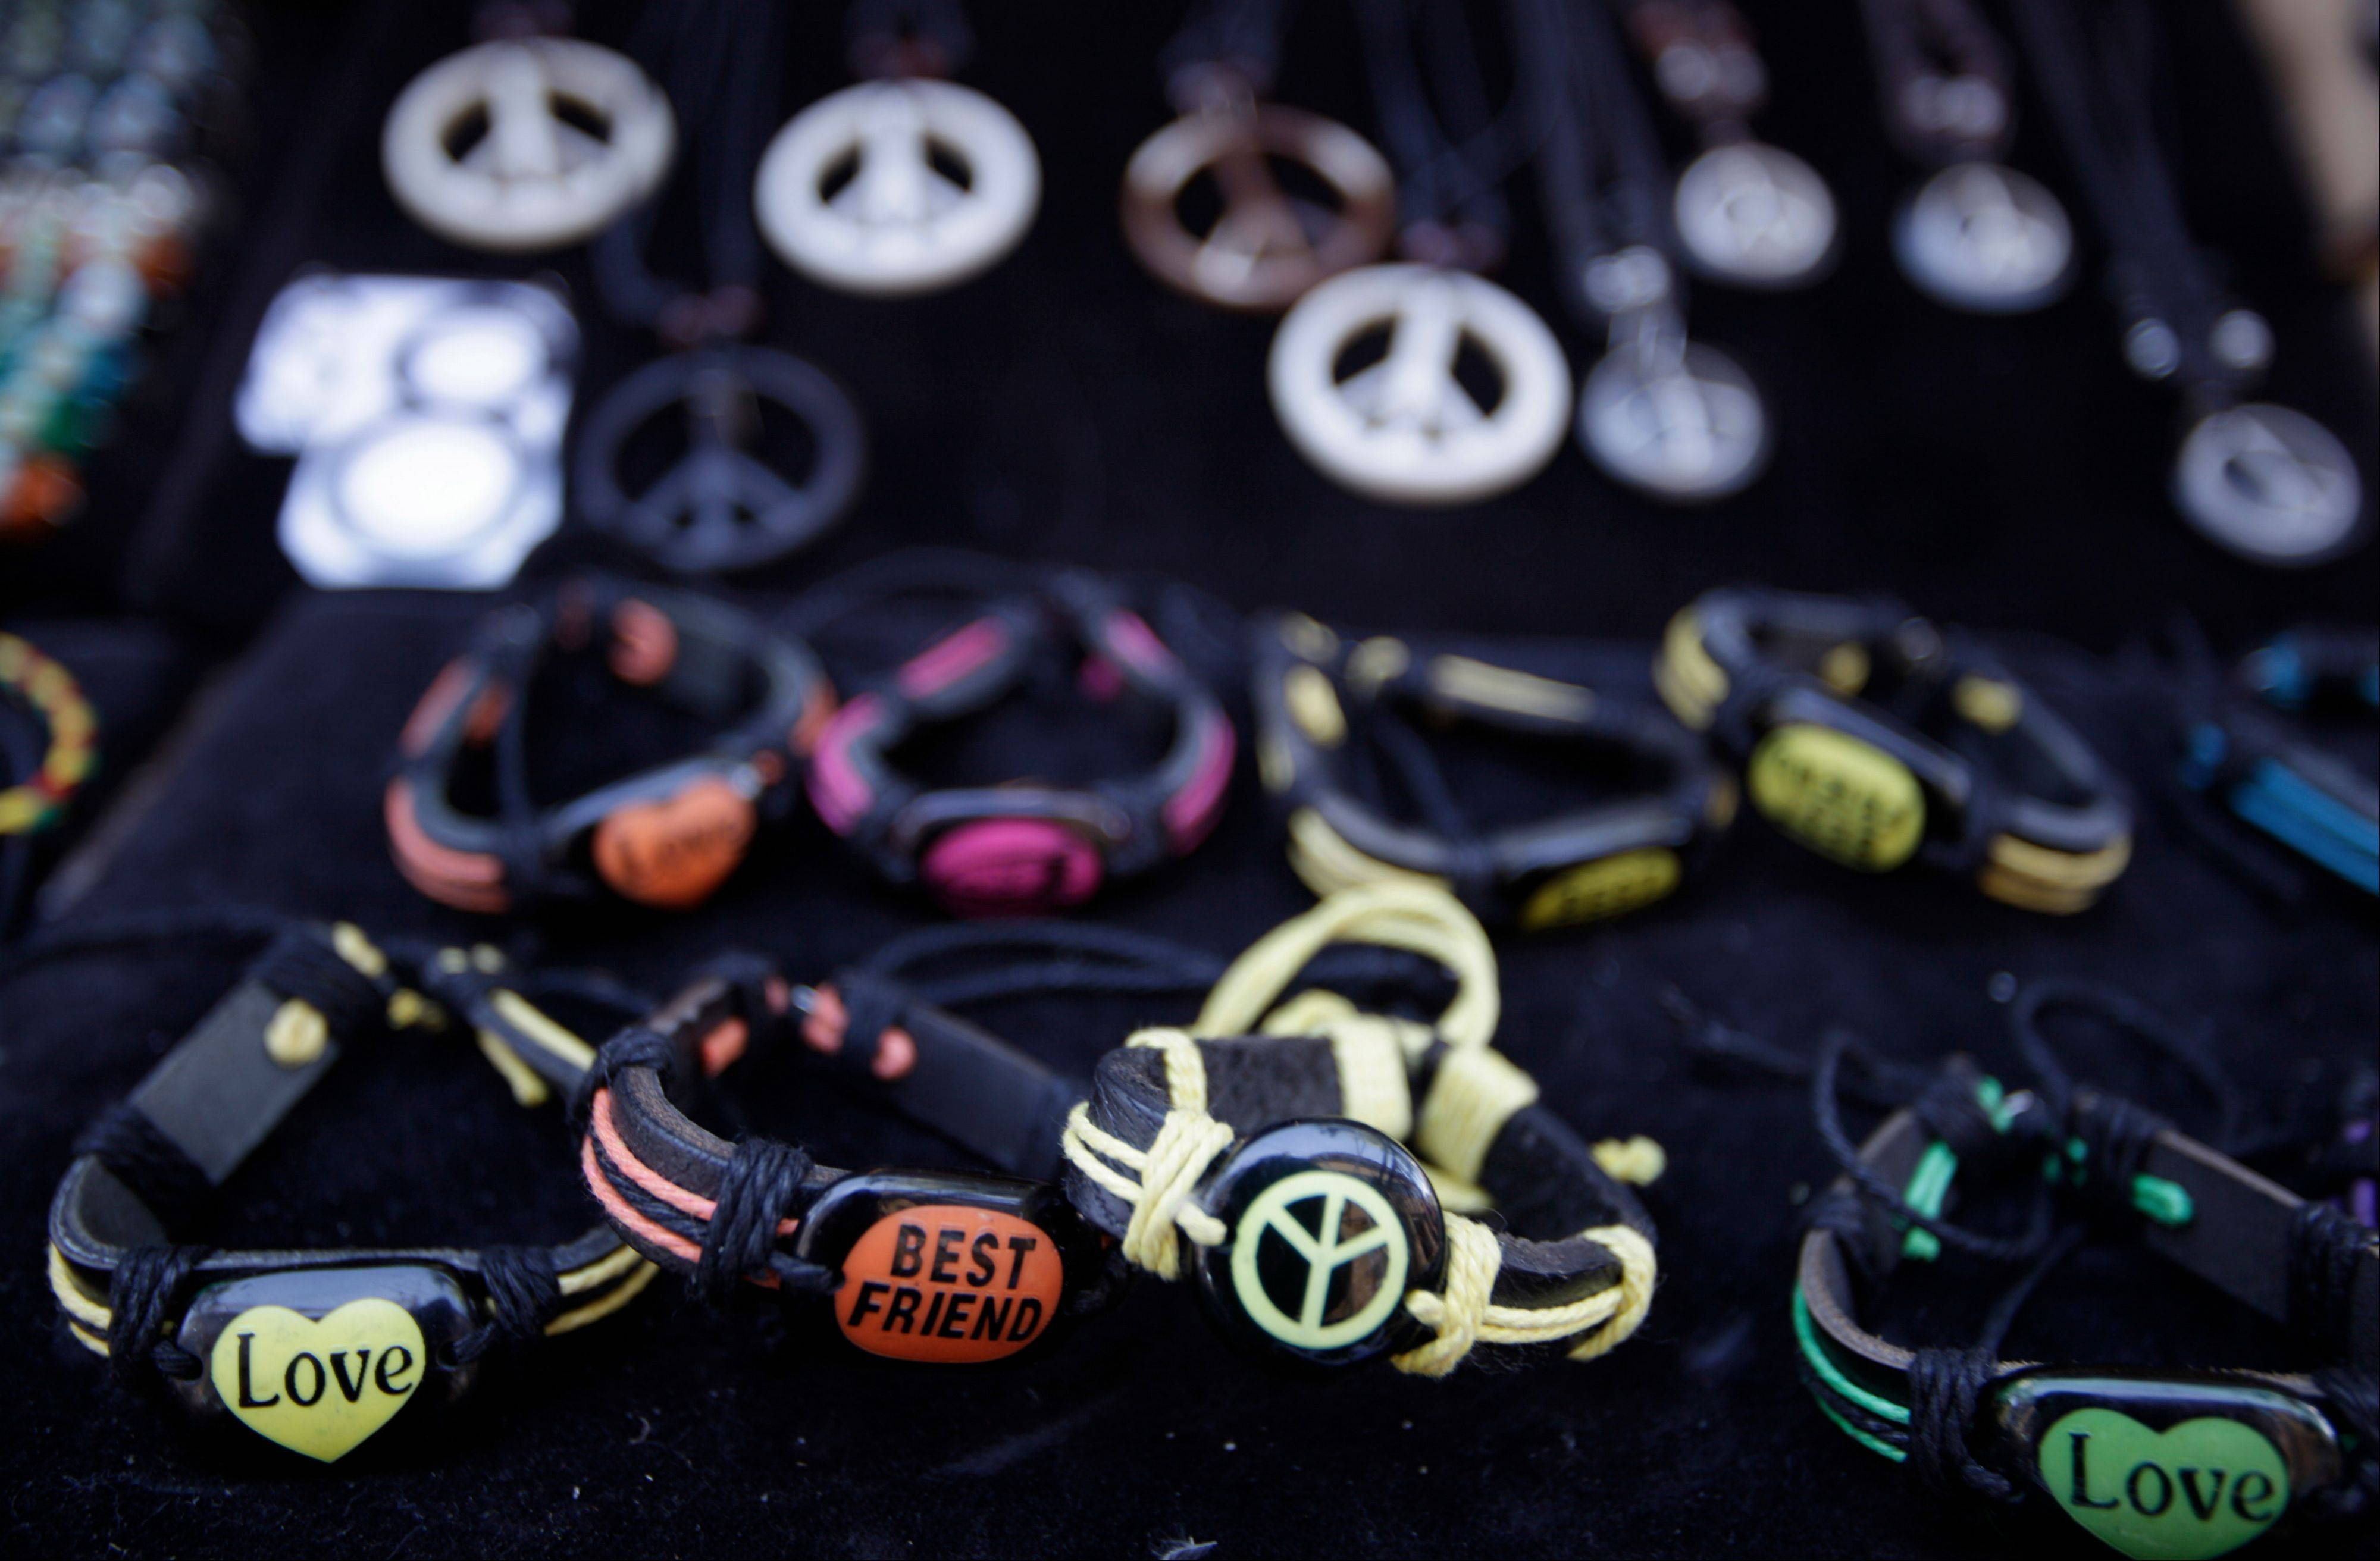 Necklaces and bracelets with peace signs are sold along the sidewalk on Telegraph Avenue in Berkeley, Calif.